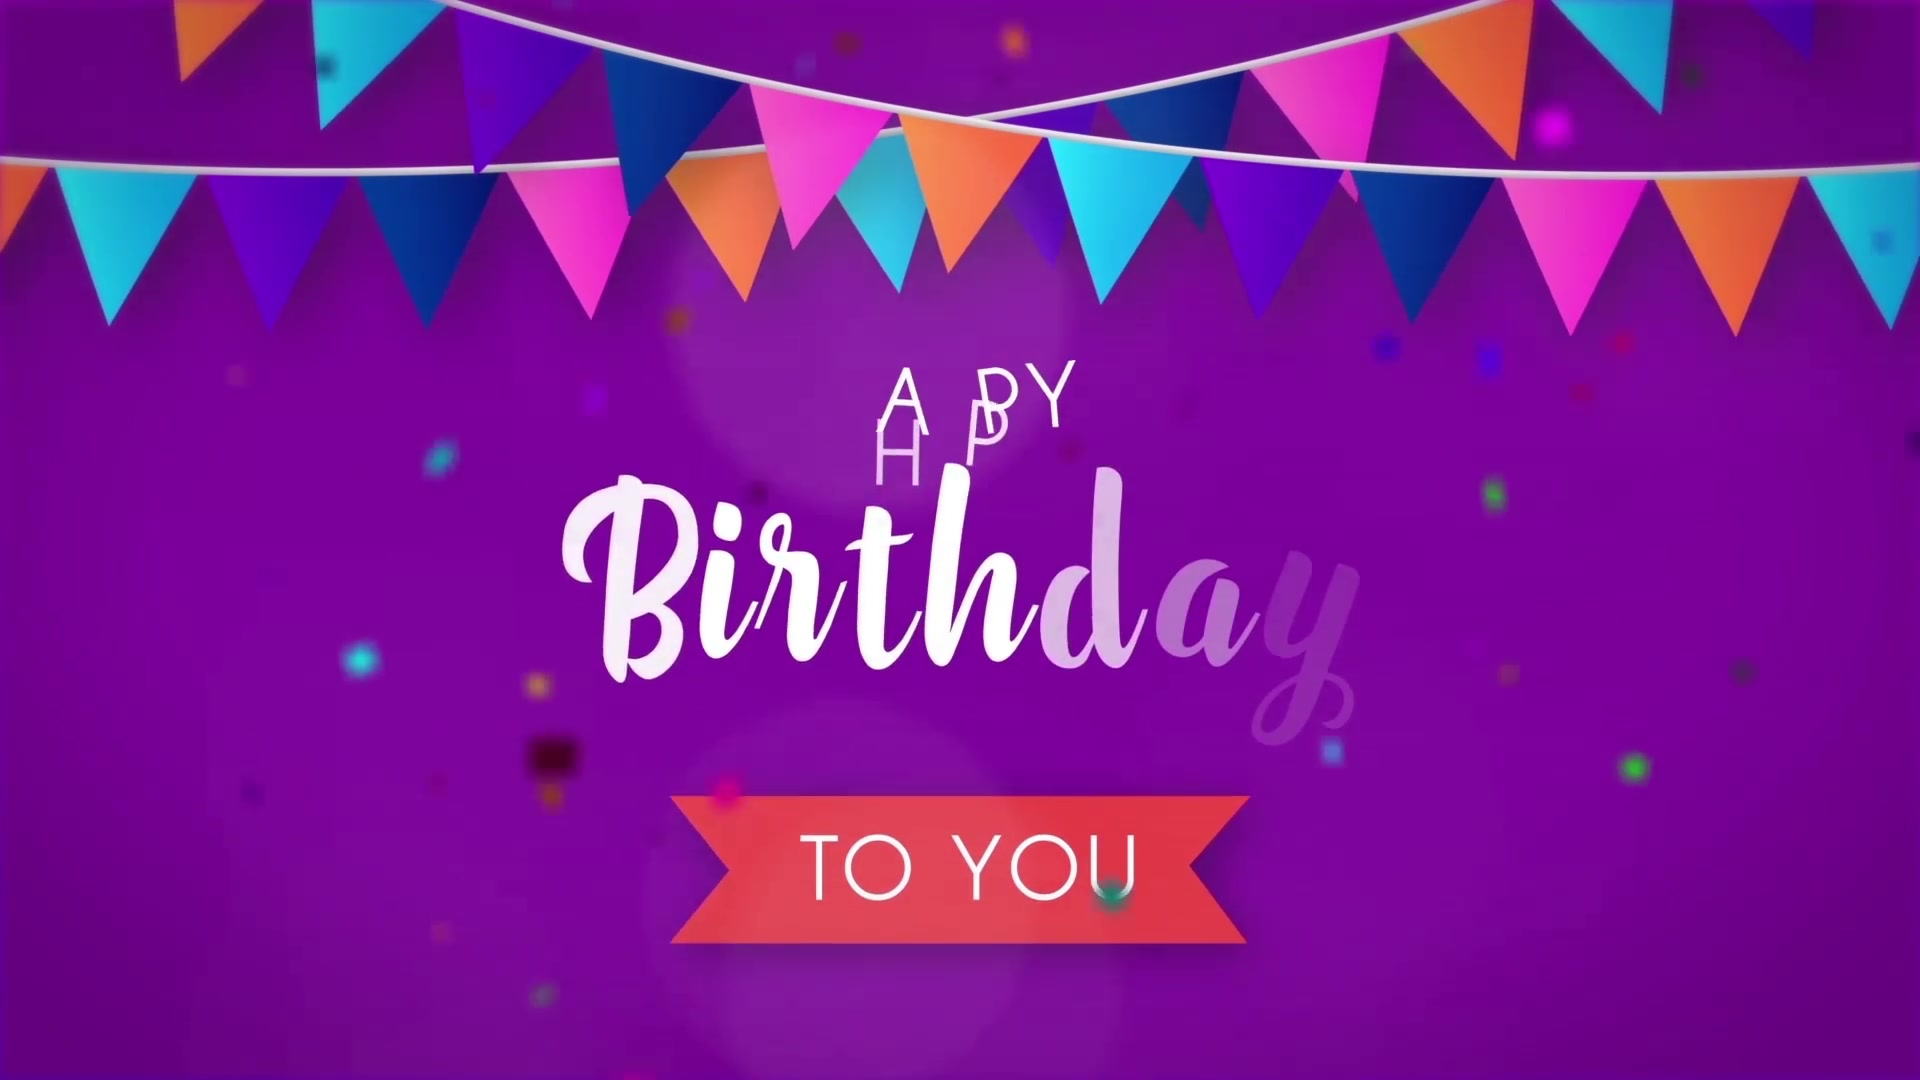 Happy Birthday Opener Videohive 31642133 After Effects Image 5